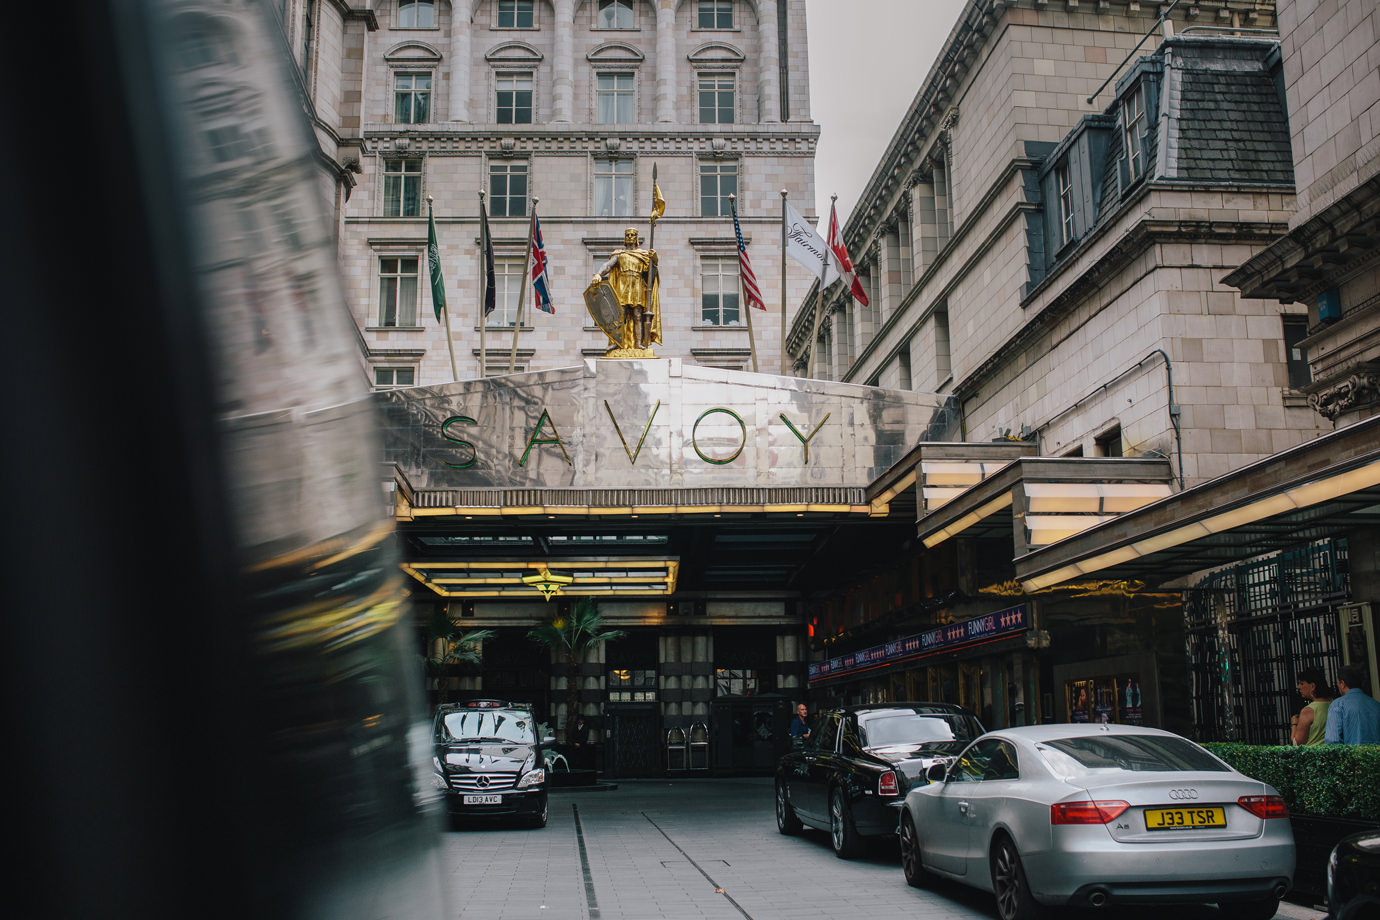 Savoy hotel, documentary wedding photography